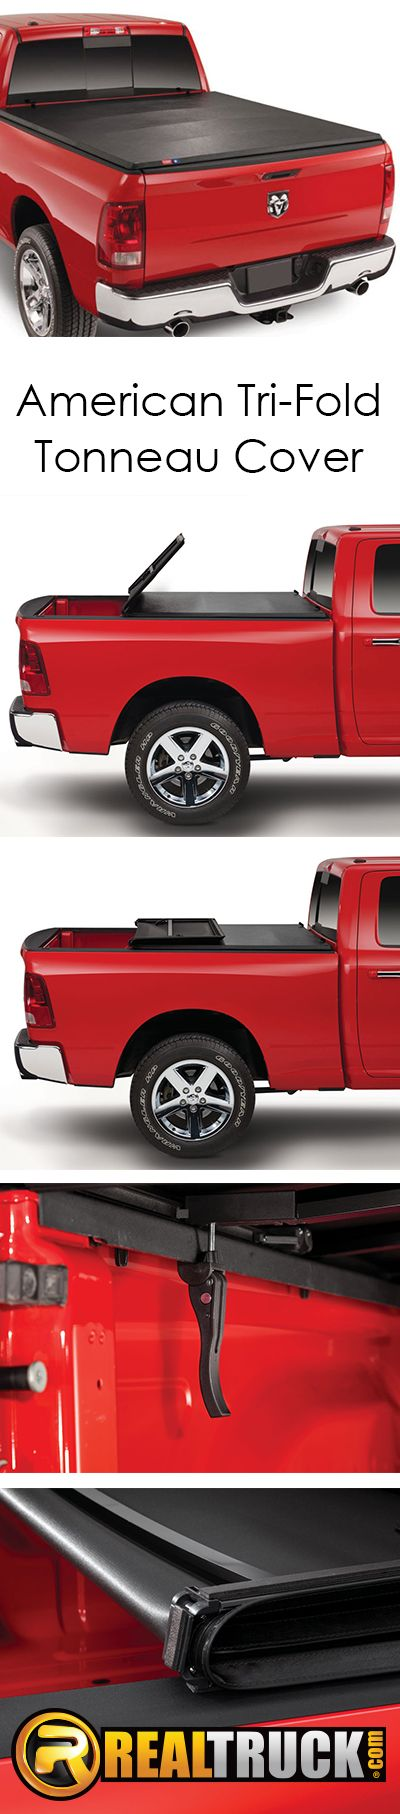 Protect your cargo from prying eyes and the elements by adding an American tri-fold tonneau cover. The American freedom soft tri-fold tonneau cover is an economical, easy-to-use truck bed cover designed to keep your cargo out of sight and out of the weather.